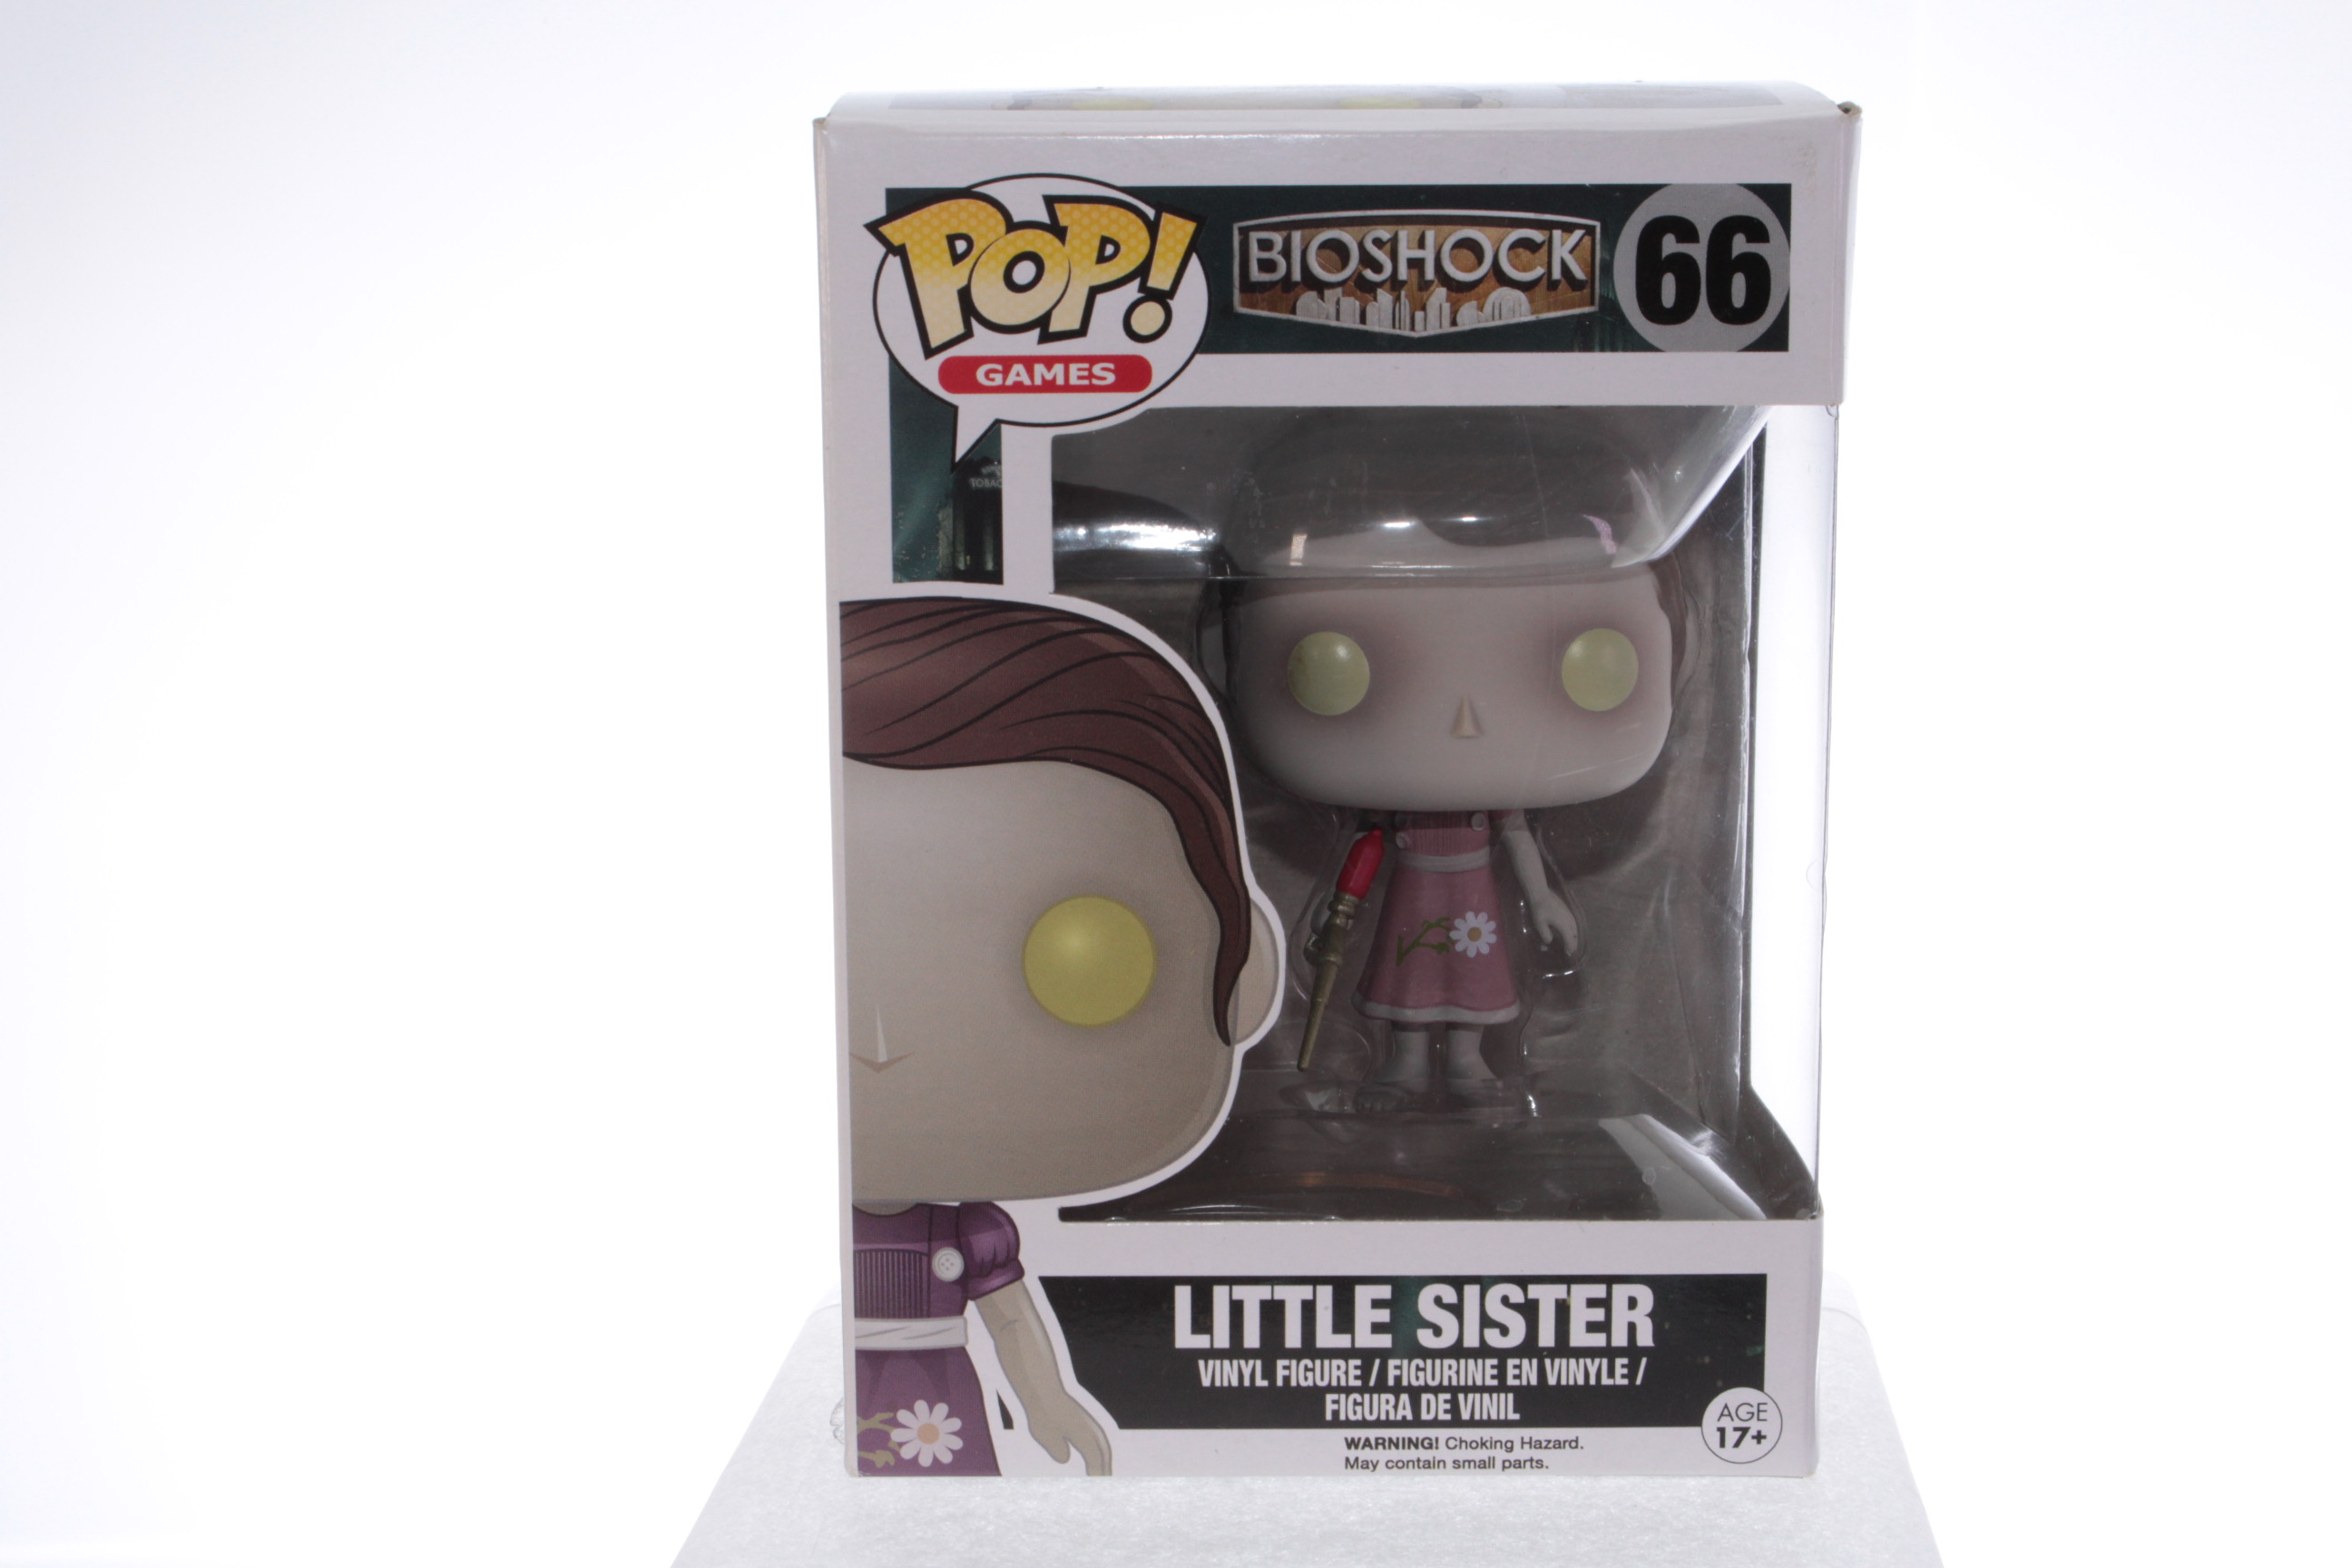 Picture Gallery for Funko Pop 66 Little sister